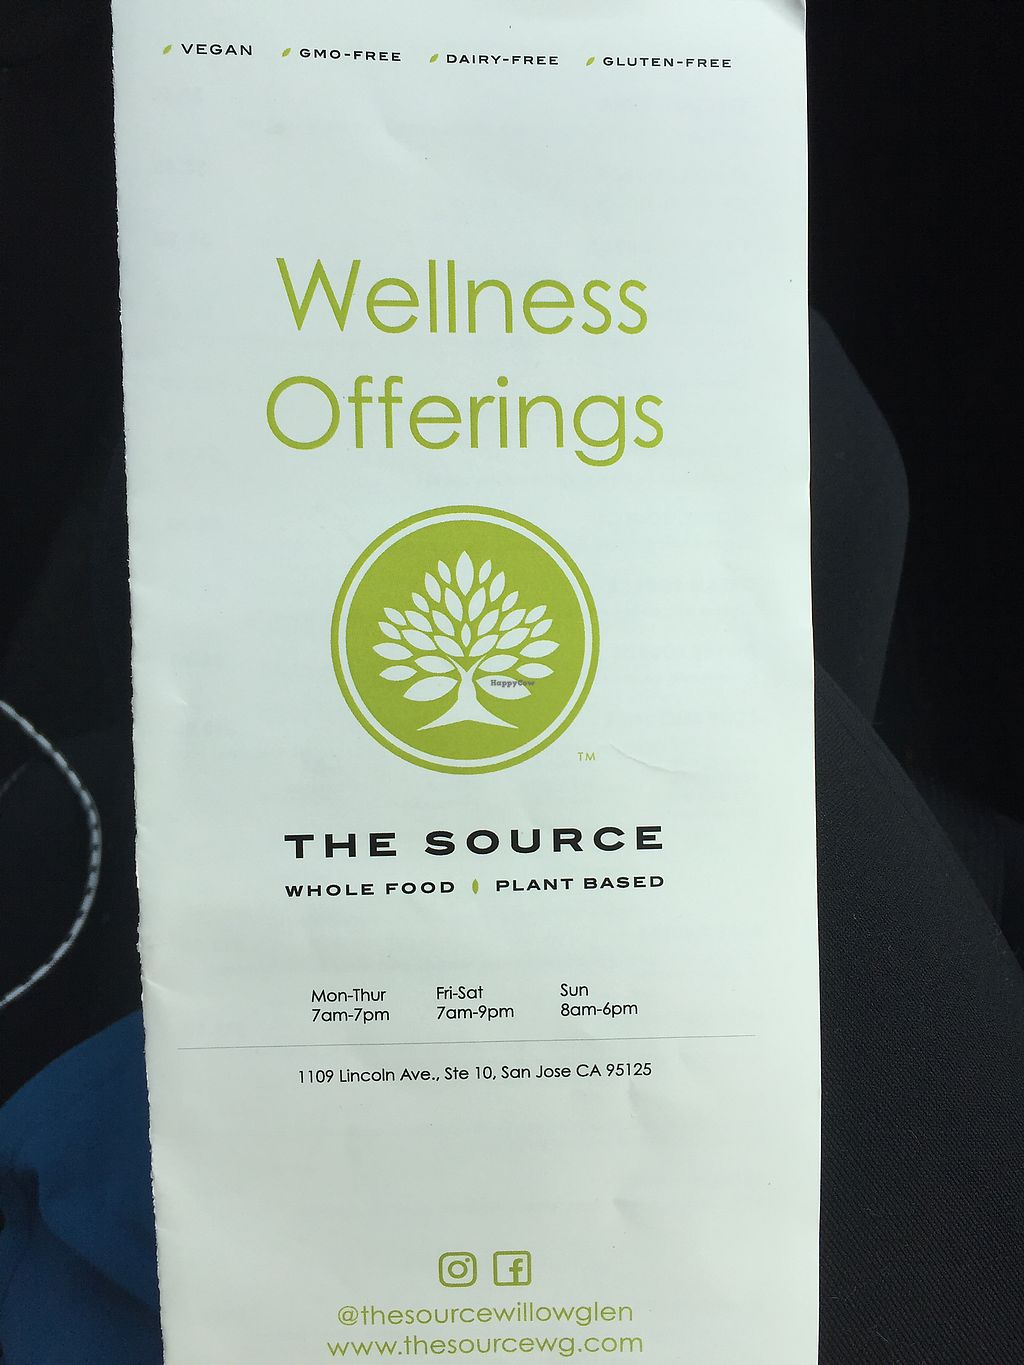 """Photo of The Source  by <a href=""""/members/profile/AshleyLorden"""">AshleyLorden</a> <br/>menu info  <br/> August 12, 2017  - <a href='/contact/abuse/image/83357/291989'>Report</a>"""